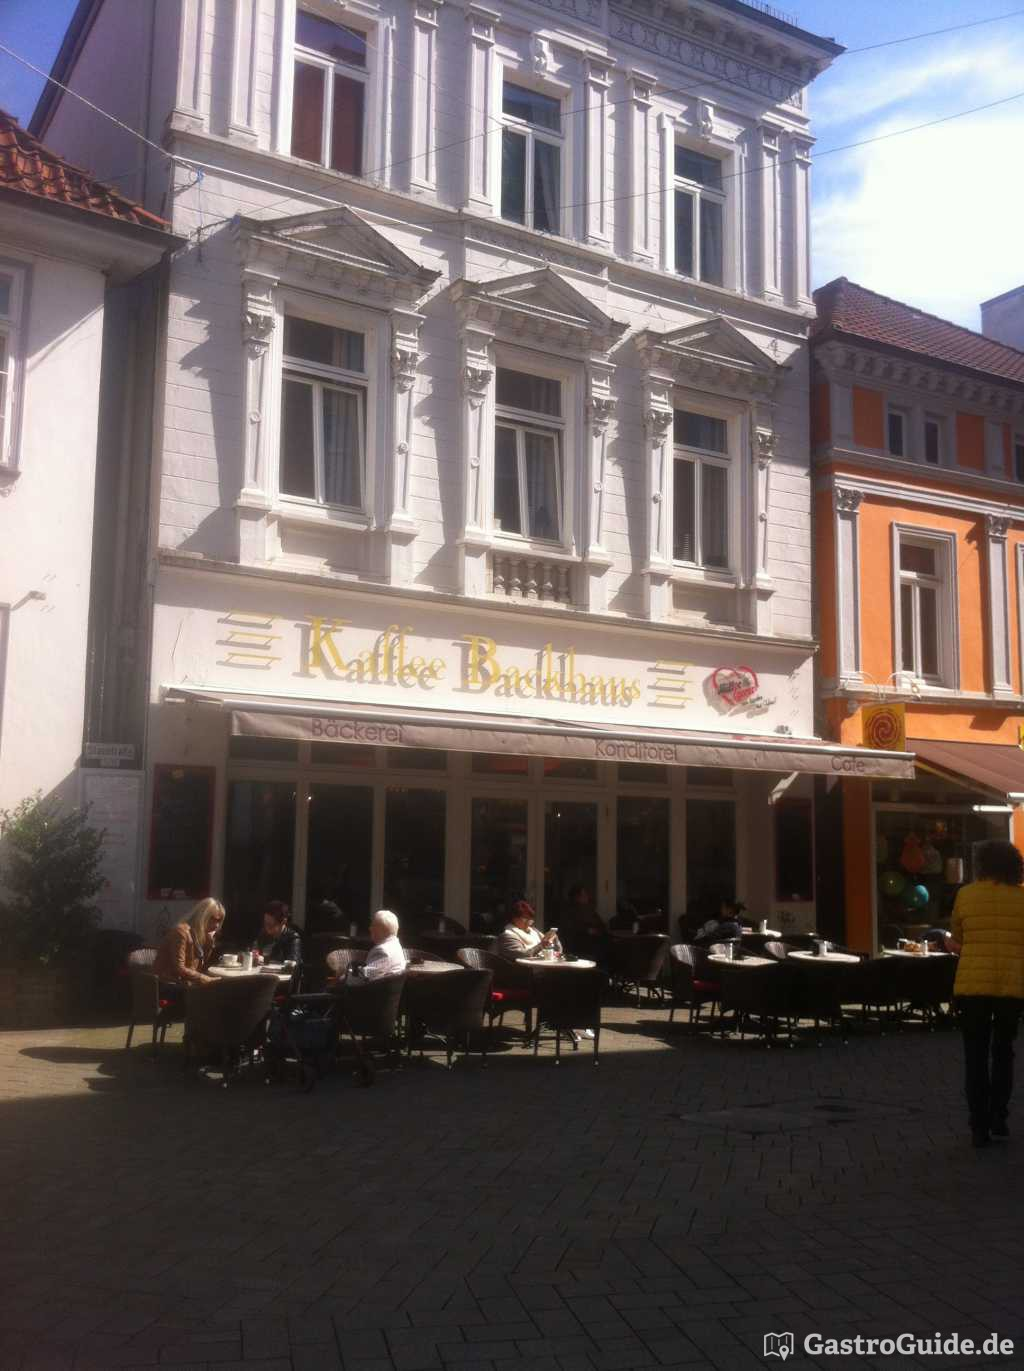 m ller egerer kaffee backhaus b ckerei cafe in 26122 oldenburg. Black Bedroom Furniture Sets. Home Design Ideas